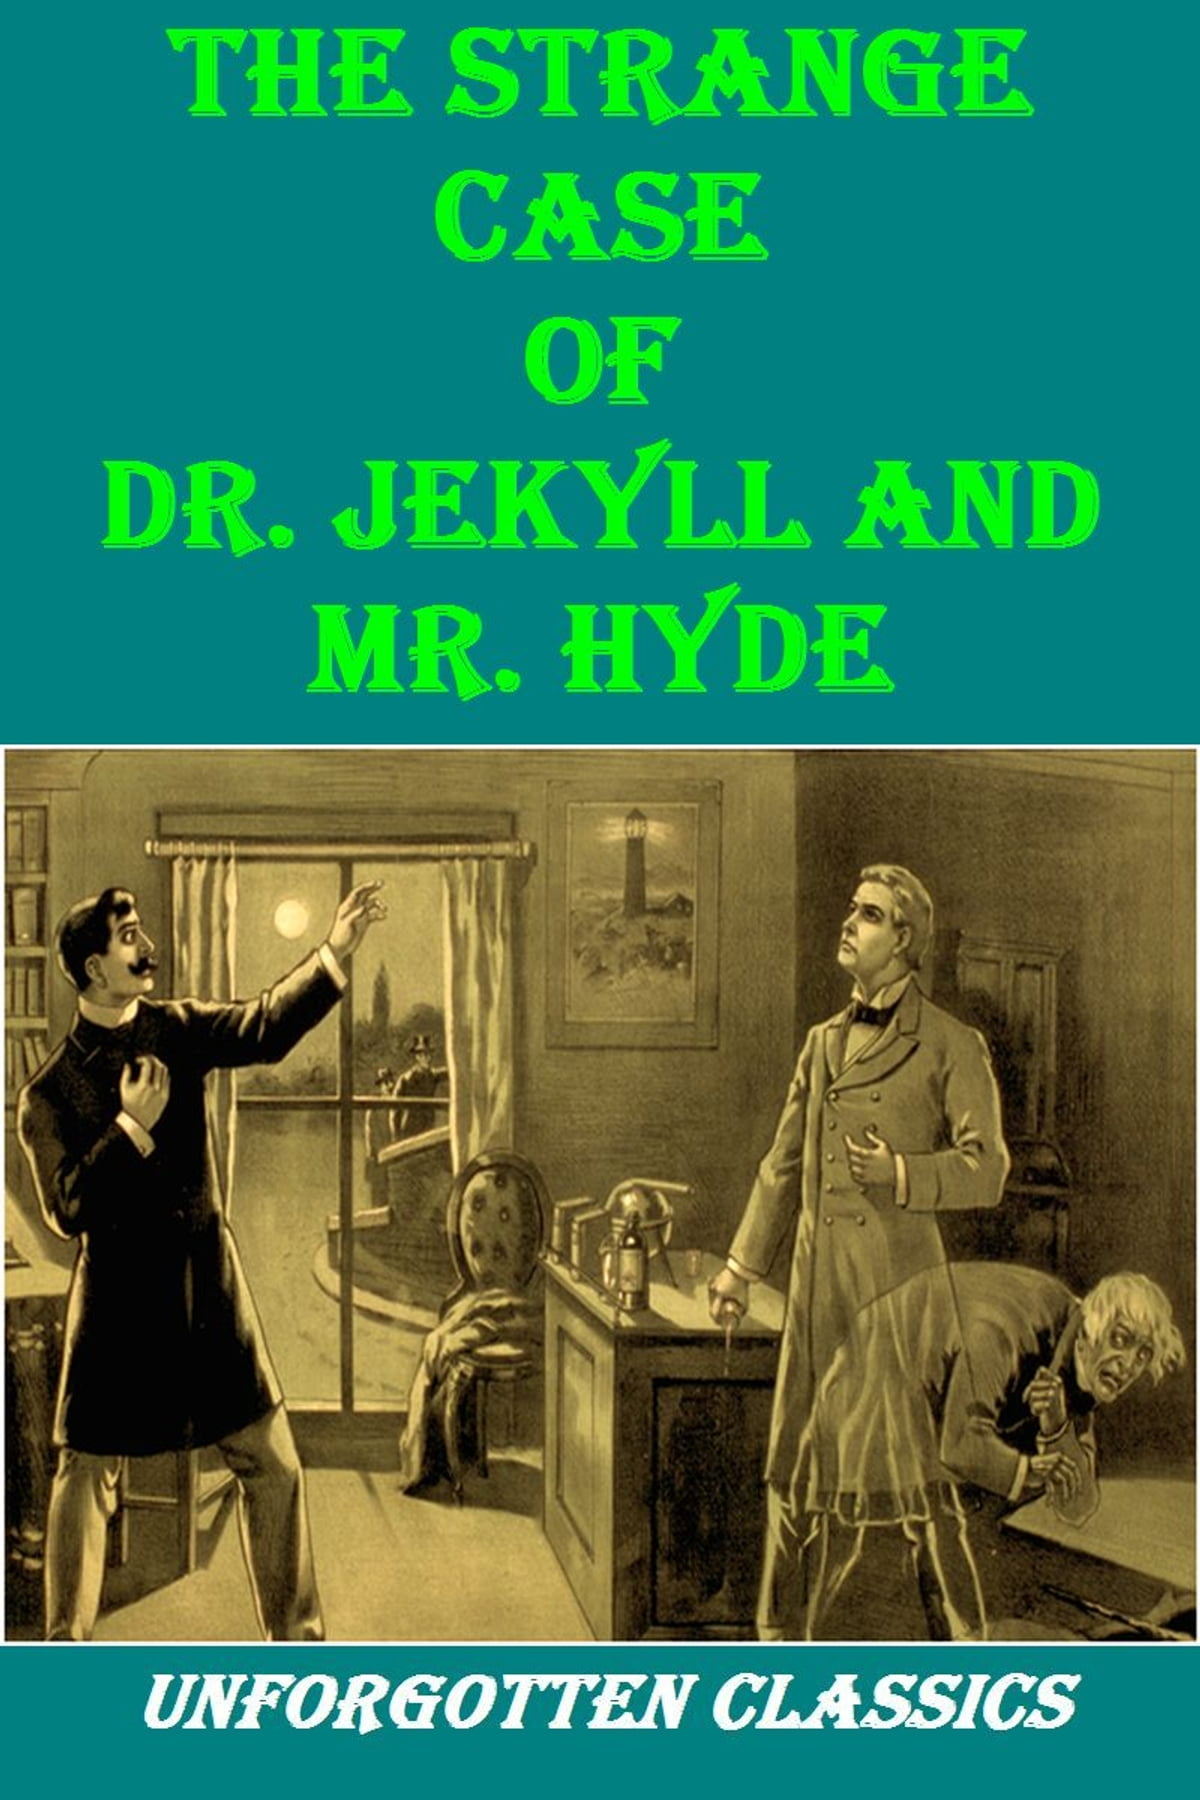 the strange case of dr jekyll and mr hyde 5 essay The strange case of dr jekyll and mr hyde lack of communication: throughout the novel, the characters demonstrate an inability to fully express them, or choose to withhold highly important information no one who meets hyde can describe exactly what it is about his appearance or face that.